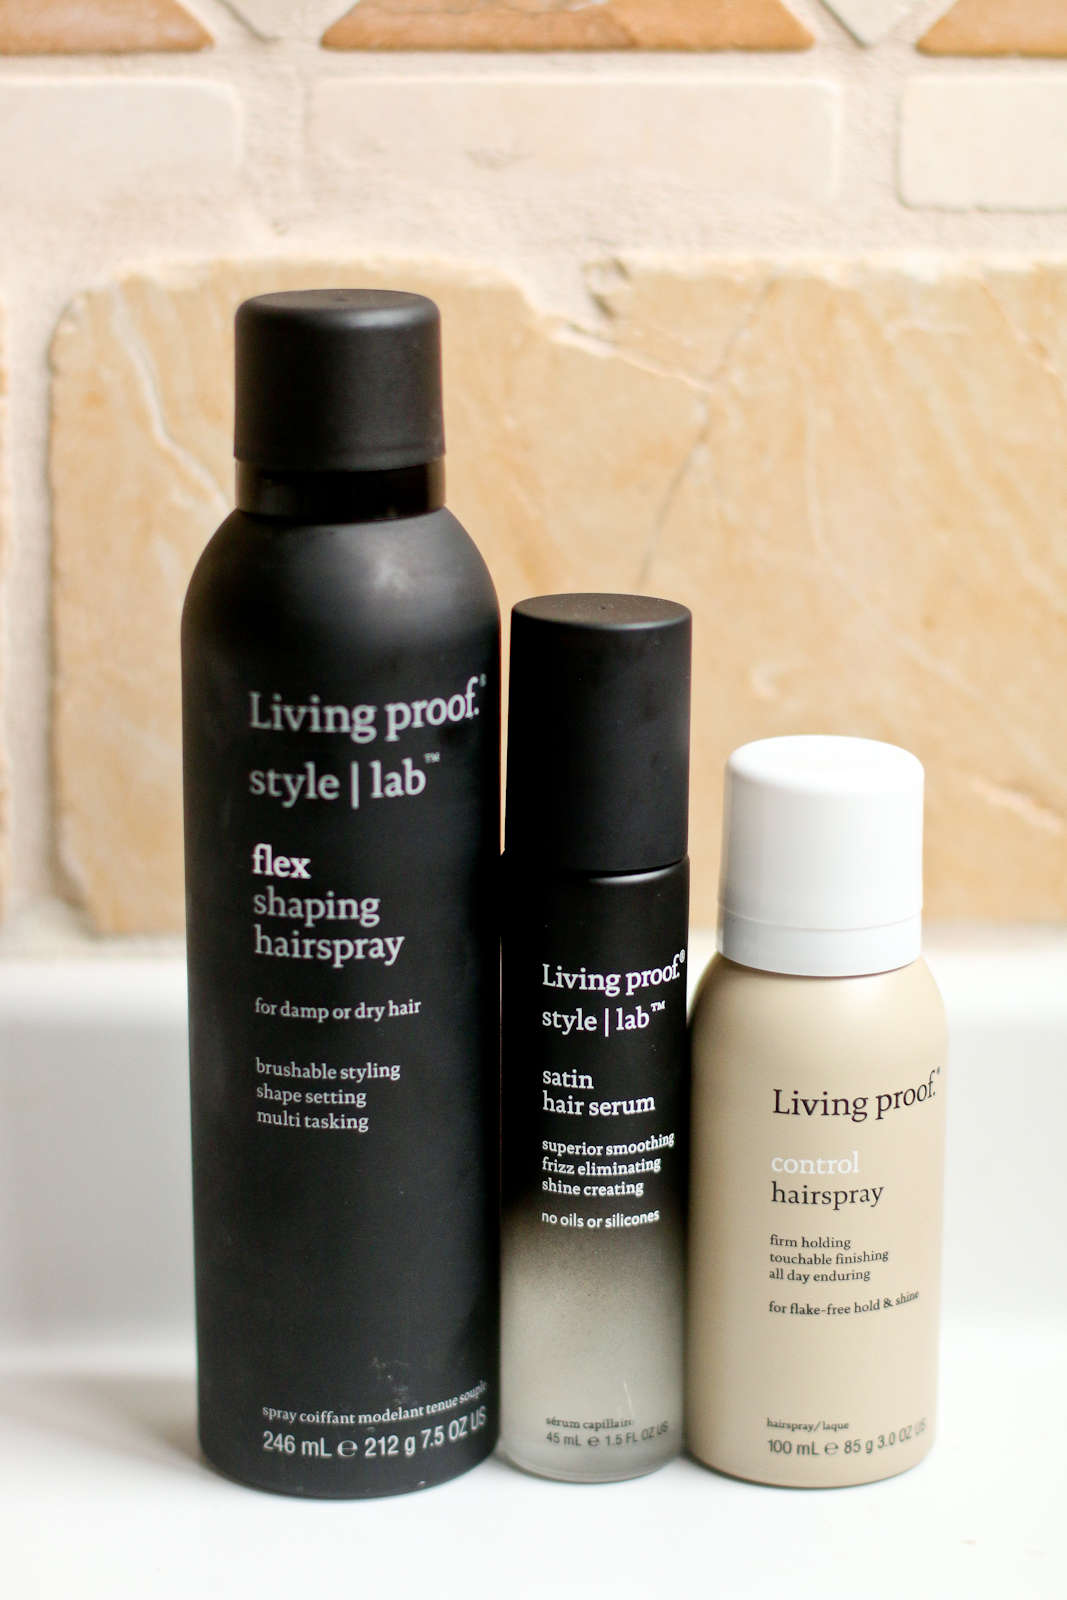 Living Proof styling products